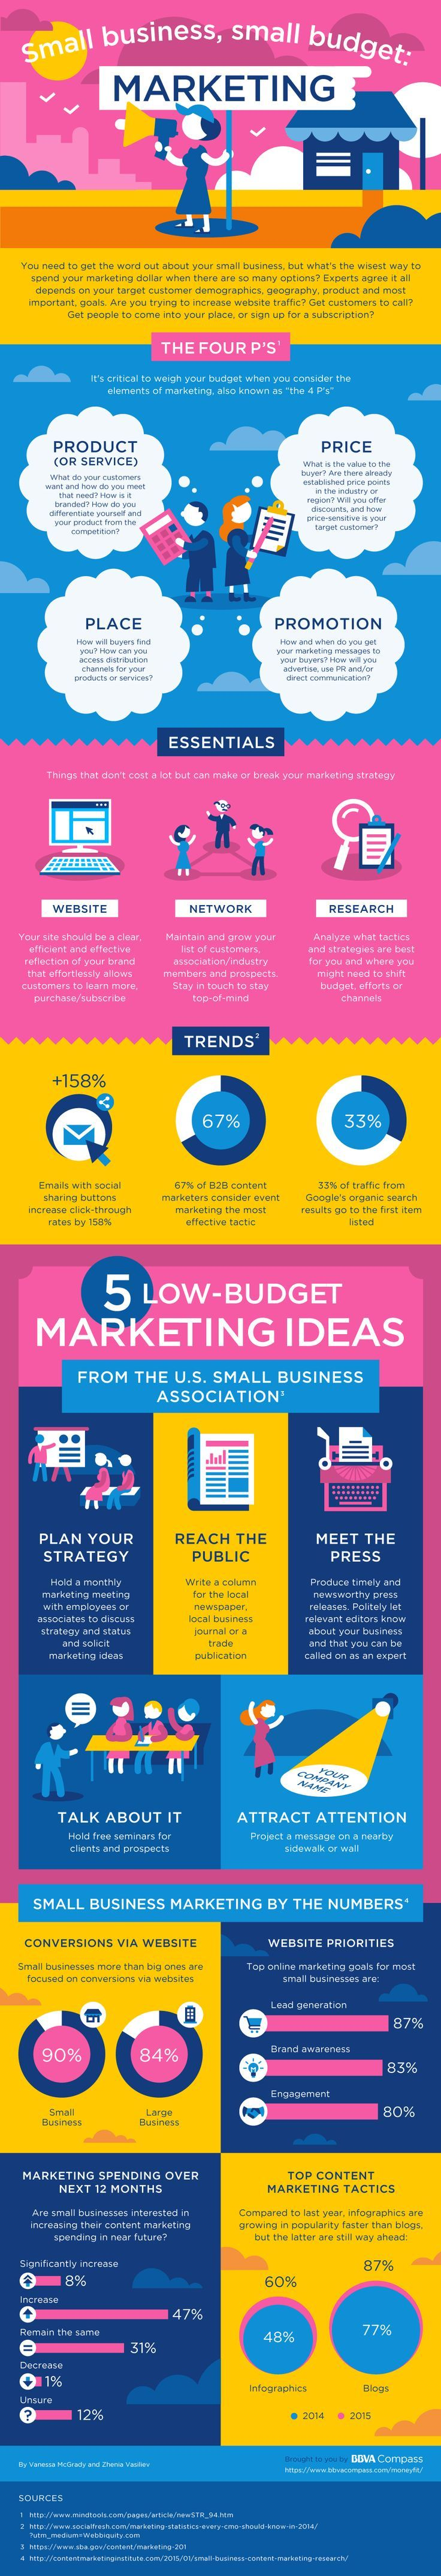 Small Business, Small Budget #Infographic #Business #SmallBusiness #Marketing http://itz-my.com